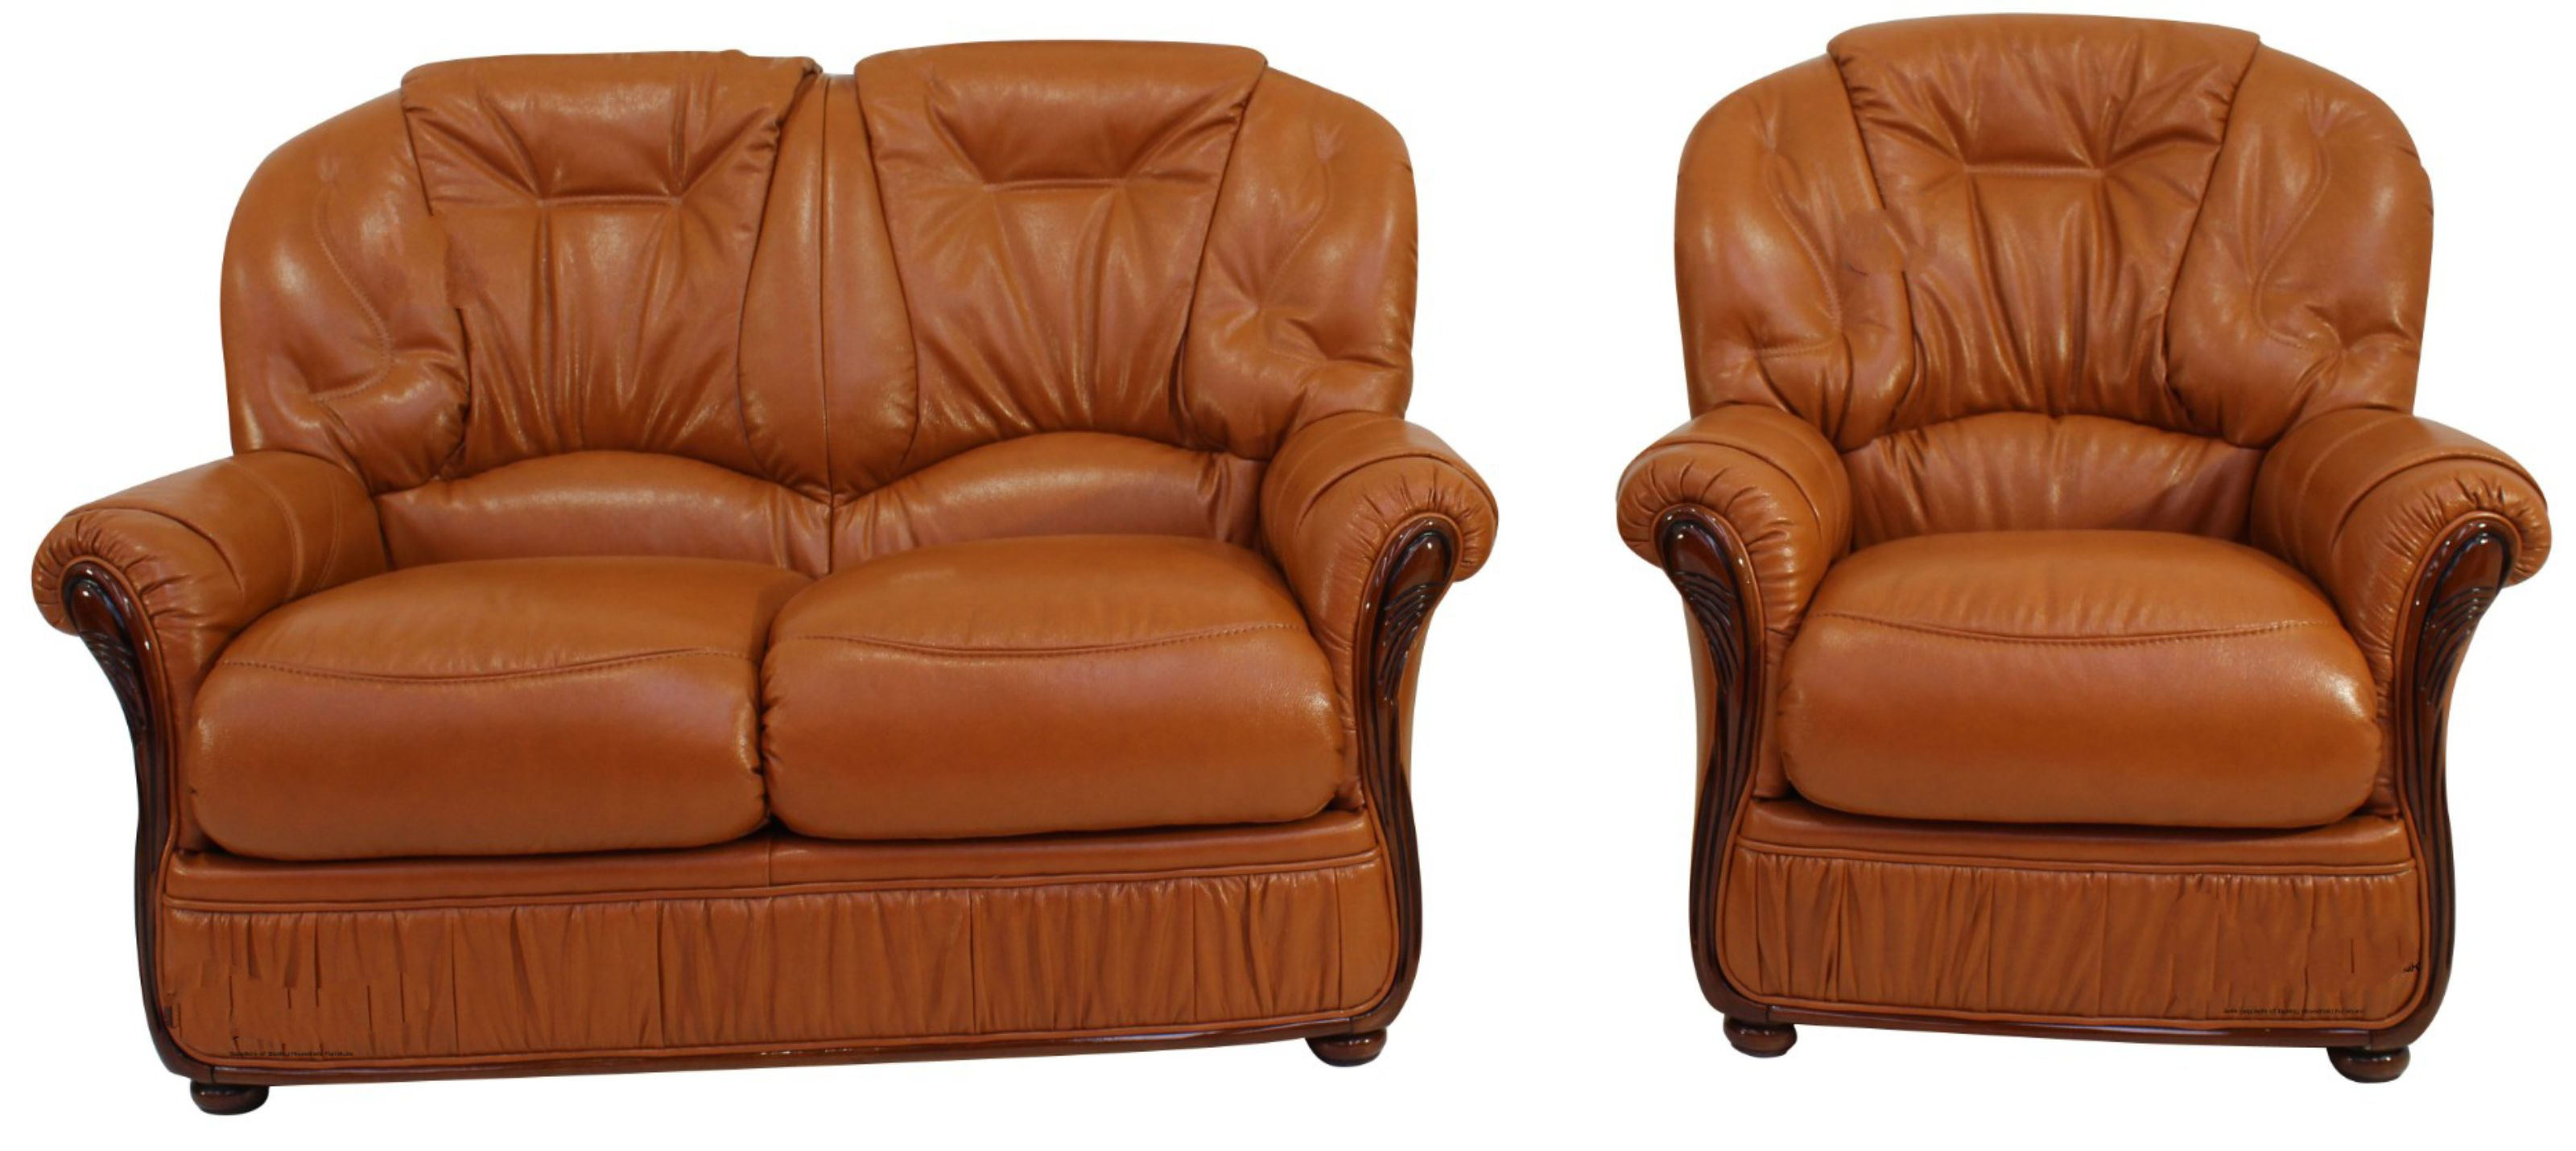 Picture of: Debora 2 Seater Armchair Genuine Italian Tan Leather Sofa Suite Offer Leather Sofas Fabric Sofas